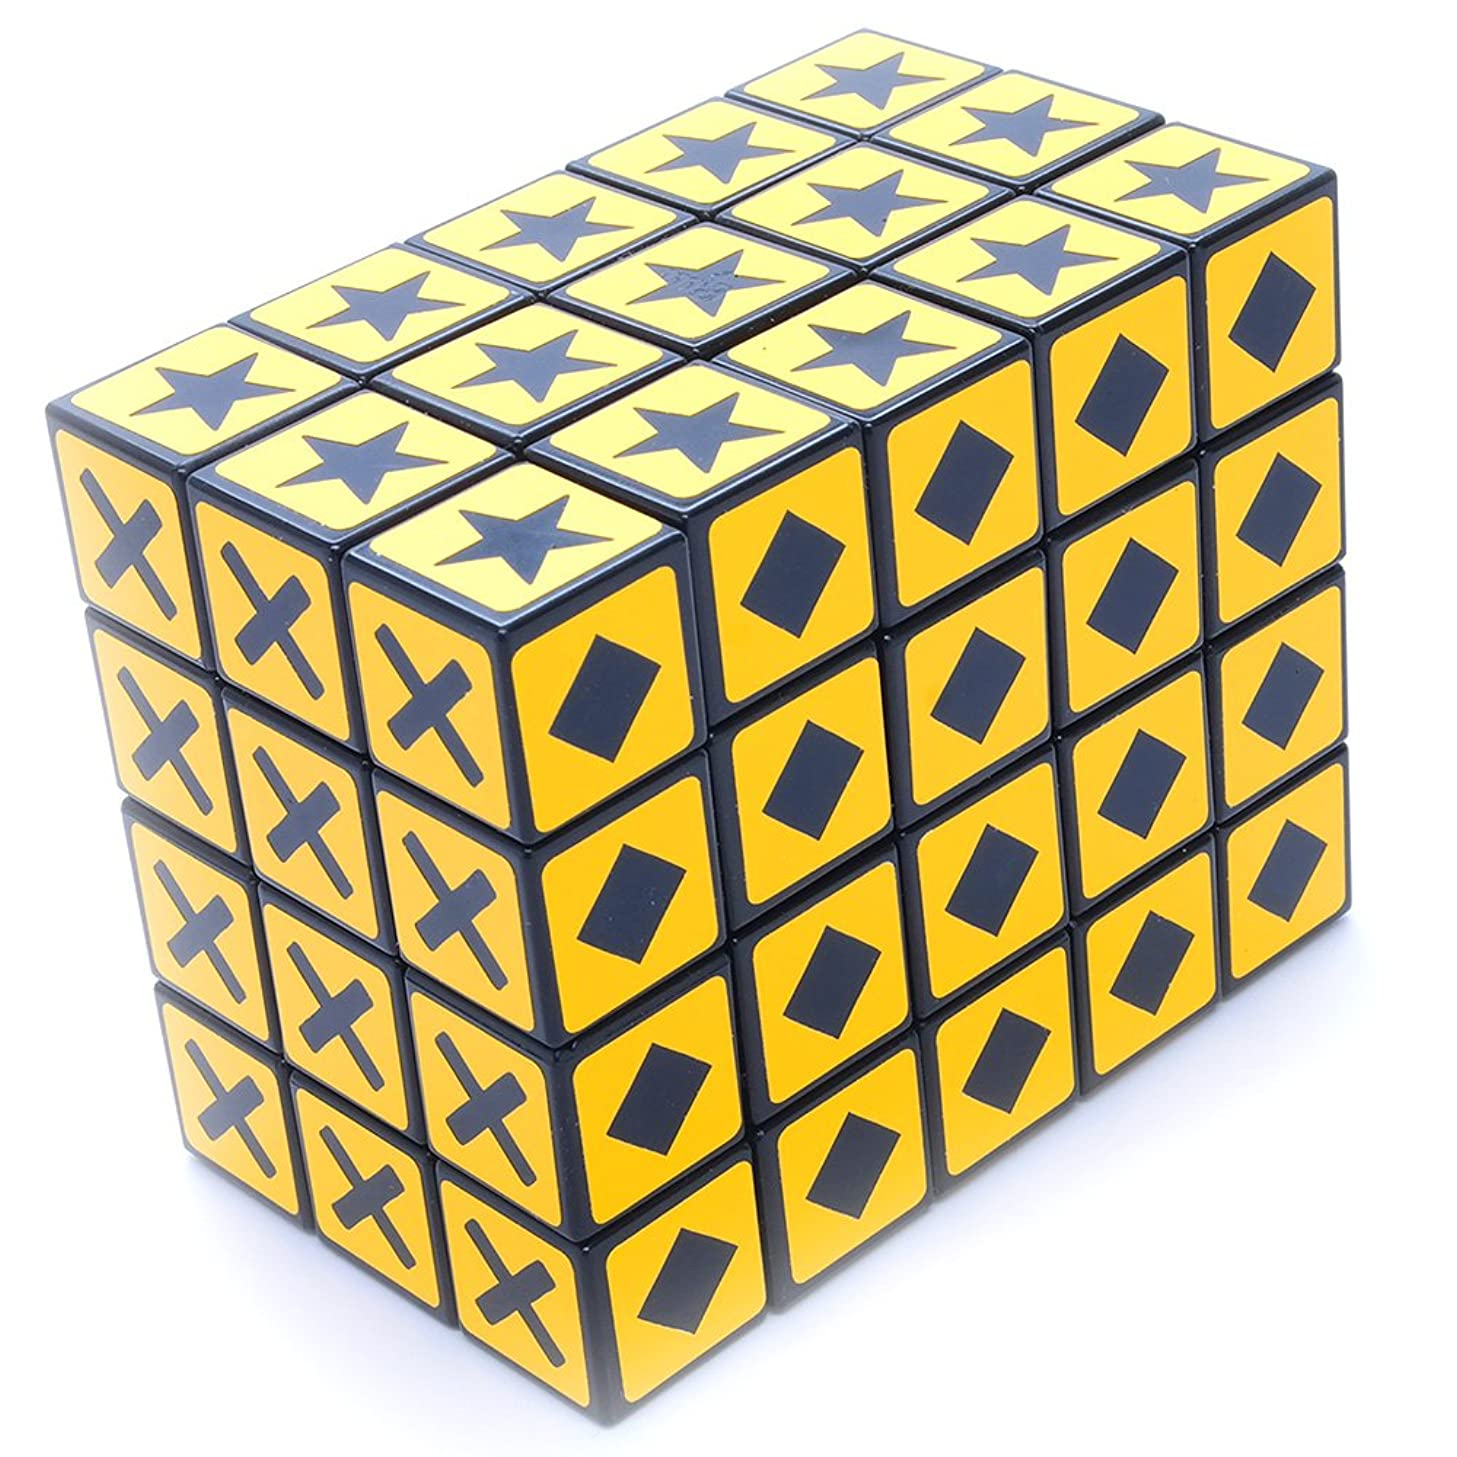 MF8 3x4x5 Color Blind Cuboid Sticker Mod Twisty Puzzle Cube Toy